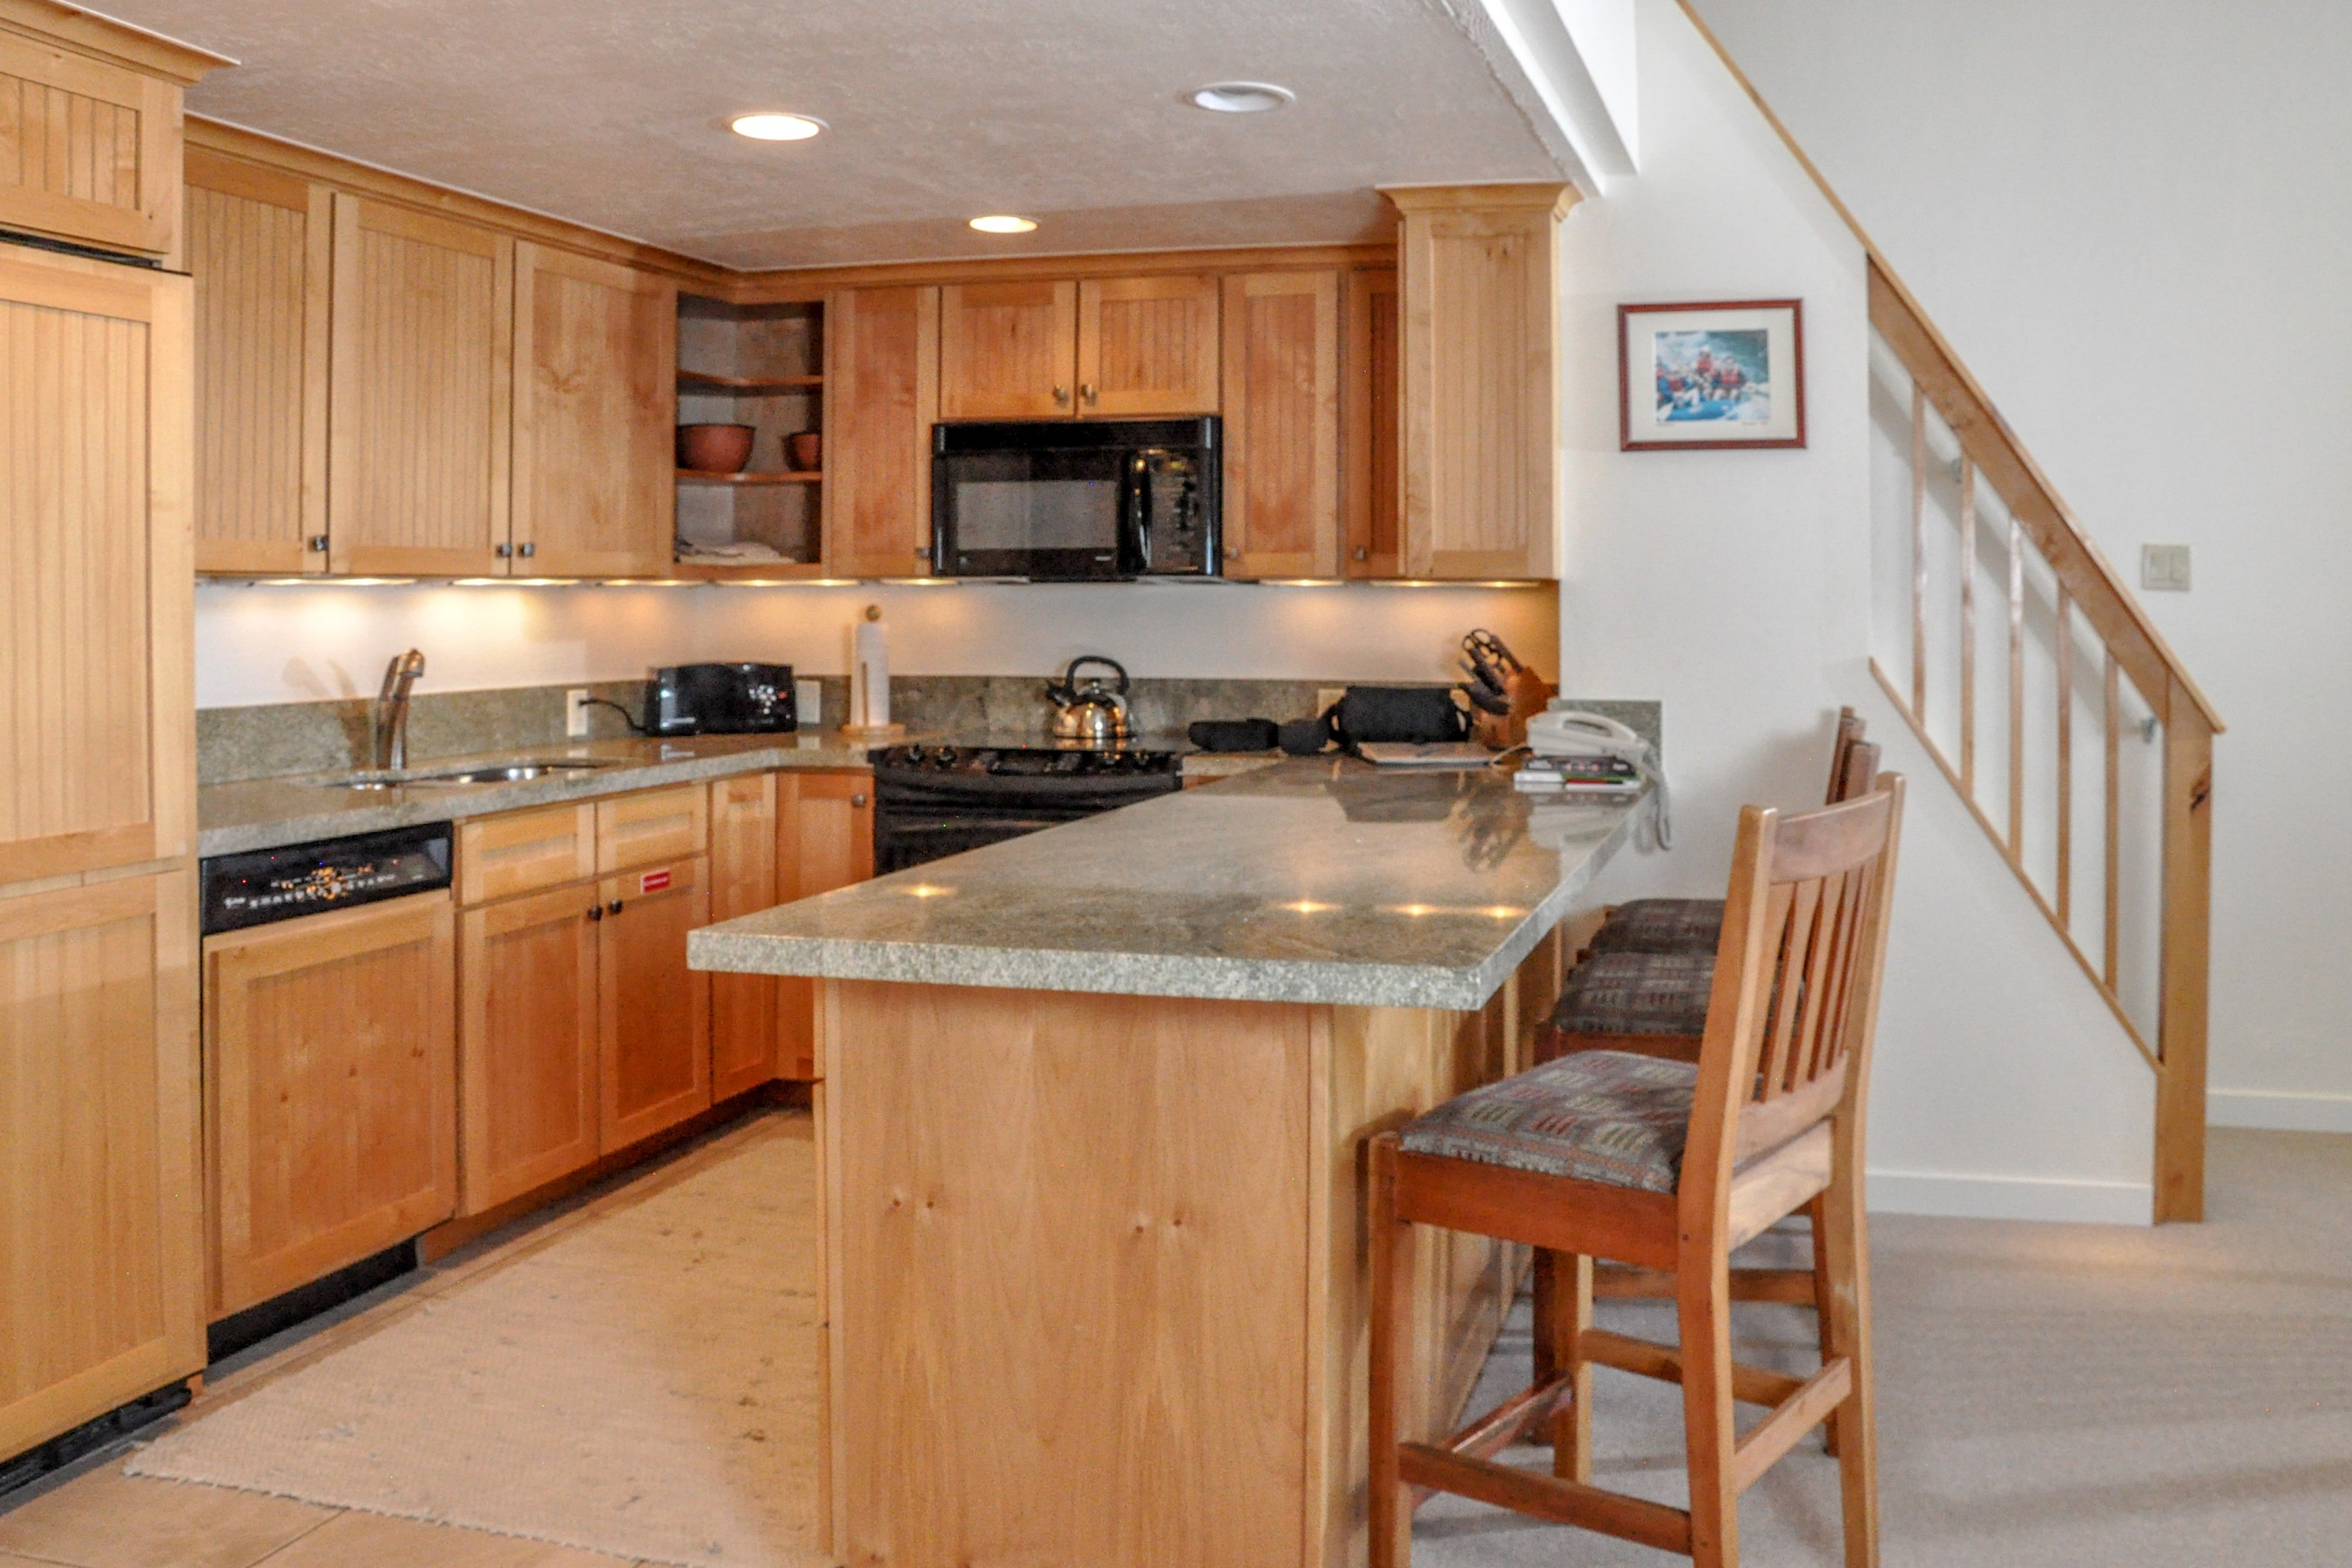 400 Wood Road, Unit 3307 Snowmass Village Photo 9